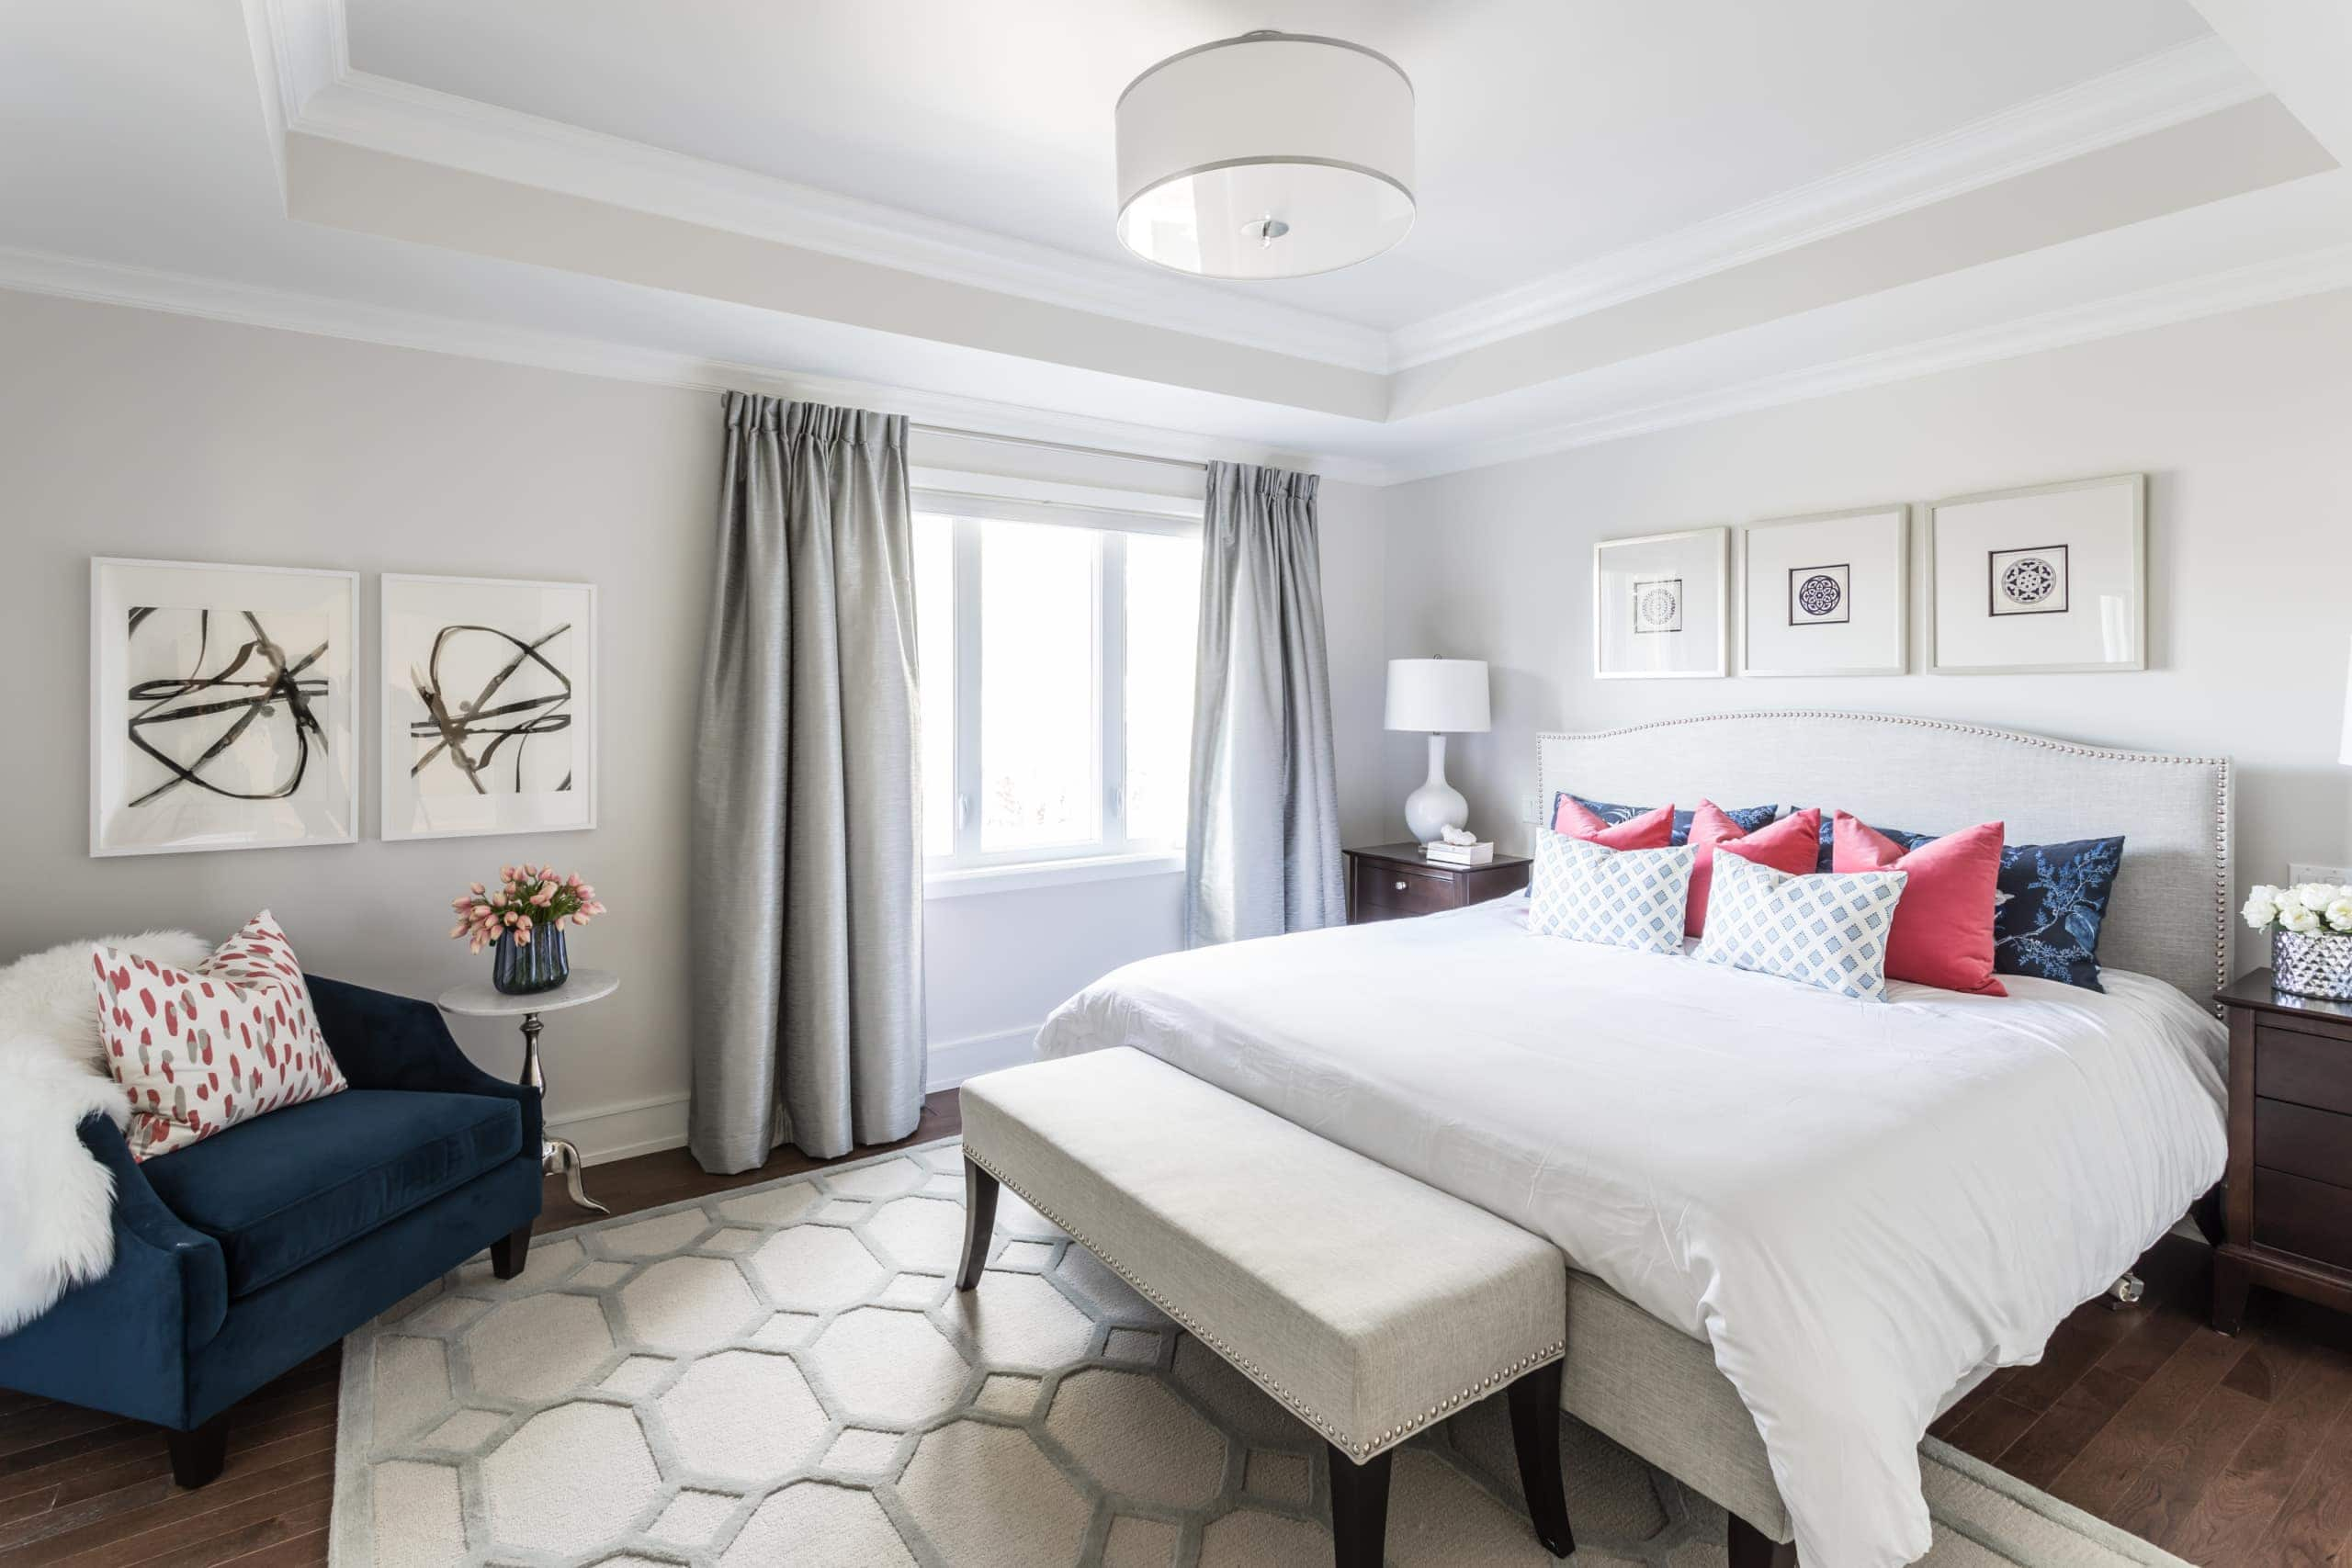 Large, white master bedroom with a white and gray carpet